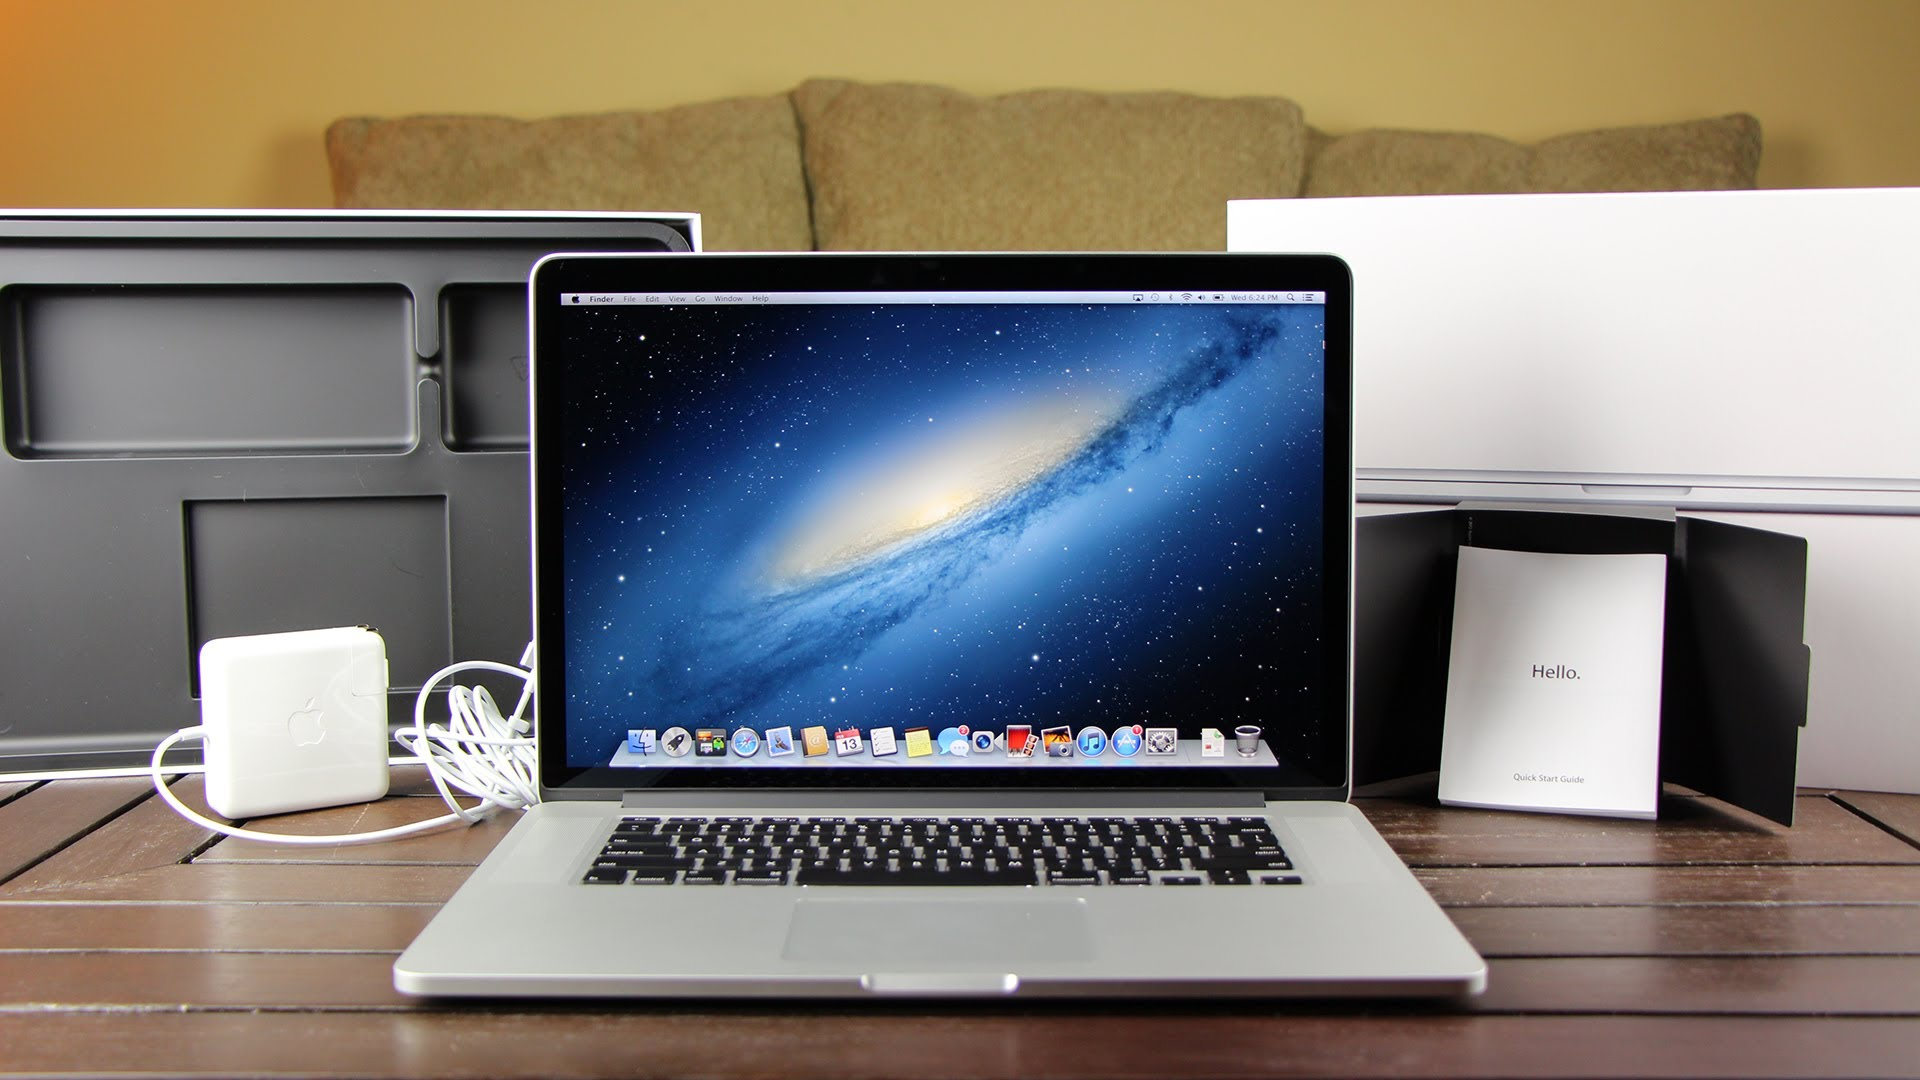 Macbook Pro Early 2015 Staingate , HD Wallpaper & Backgrounds